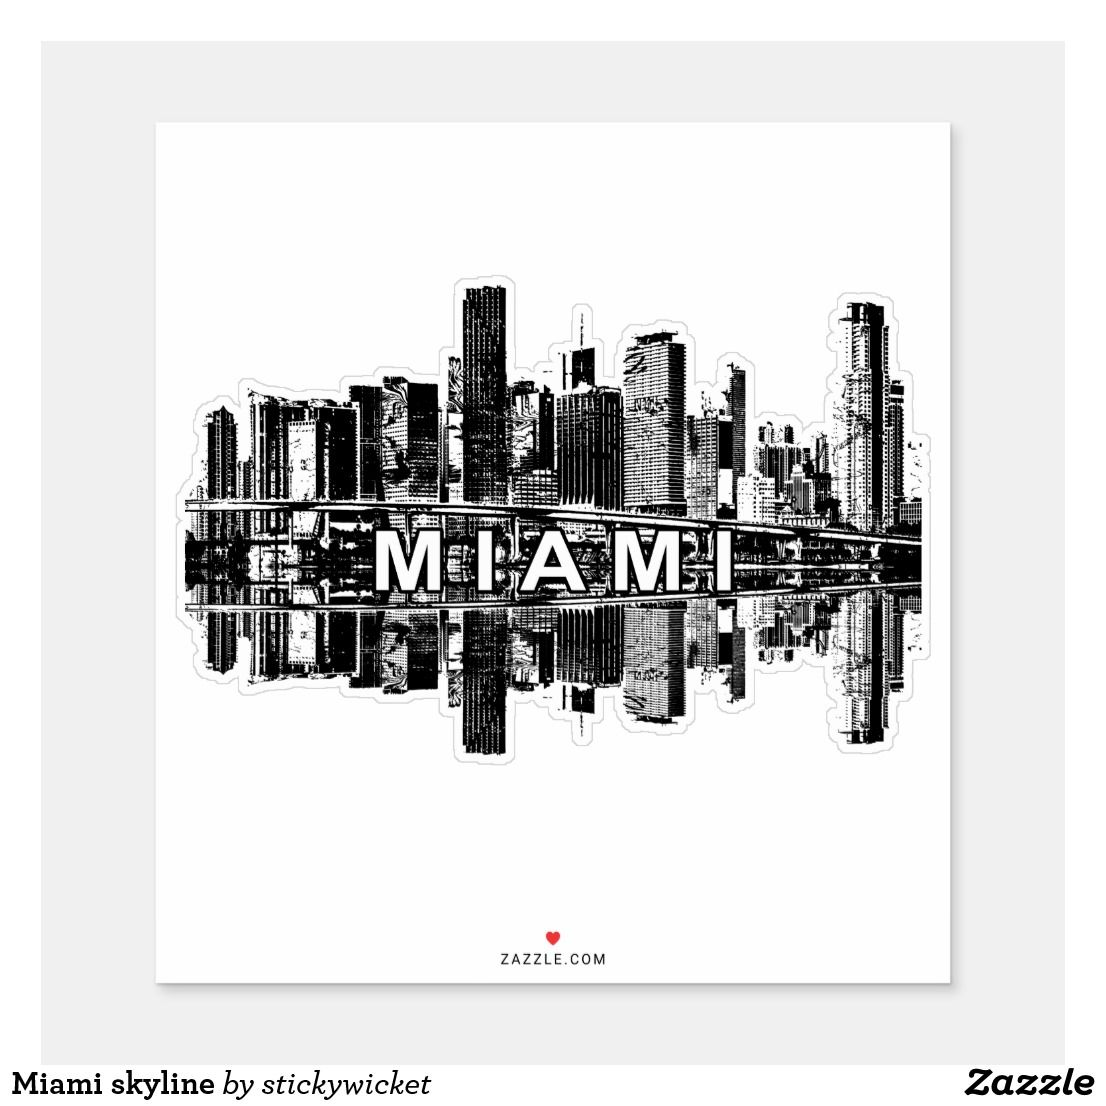 miami skyline drawing miami skyline clipart best skyline drawing miami